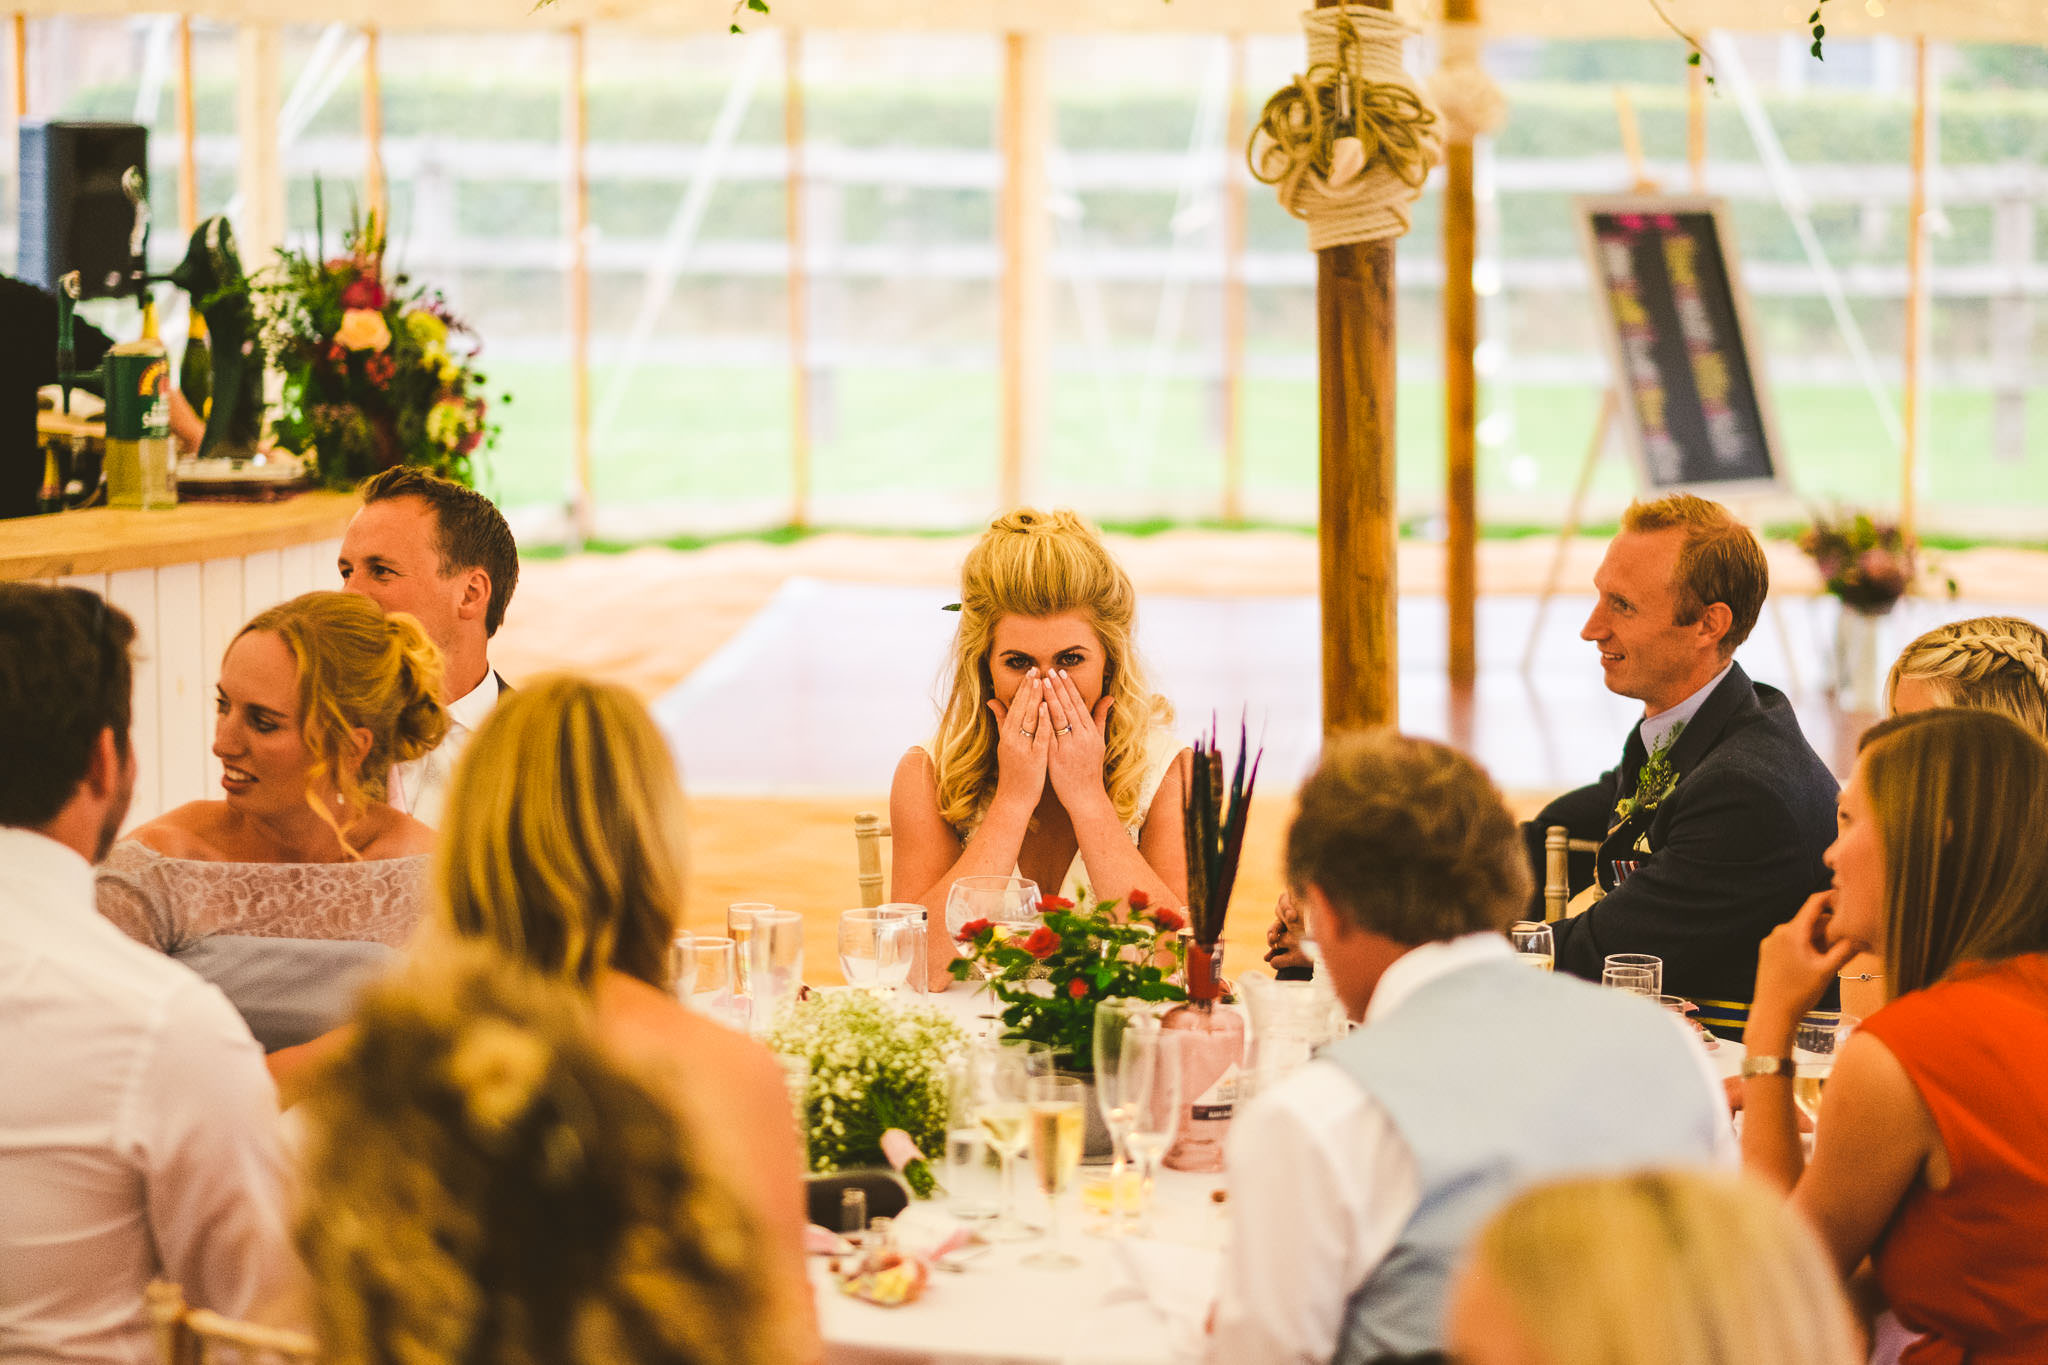 There is good embarrassment and bad embarrassment when it comes to wedding speeches. Try to stay on the right side of the line.